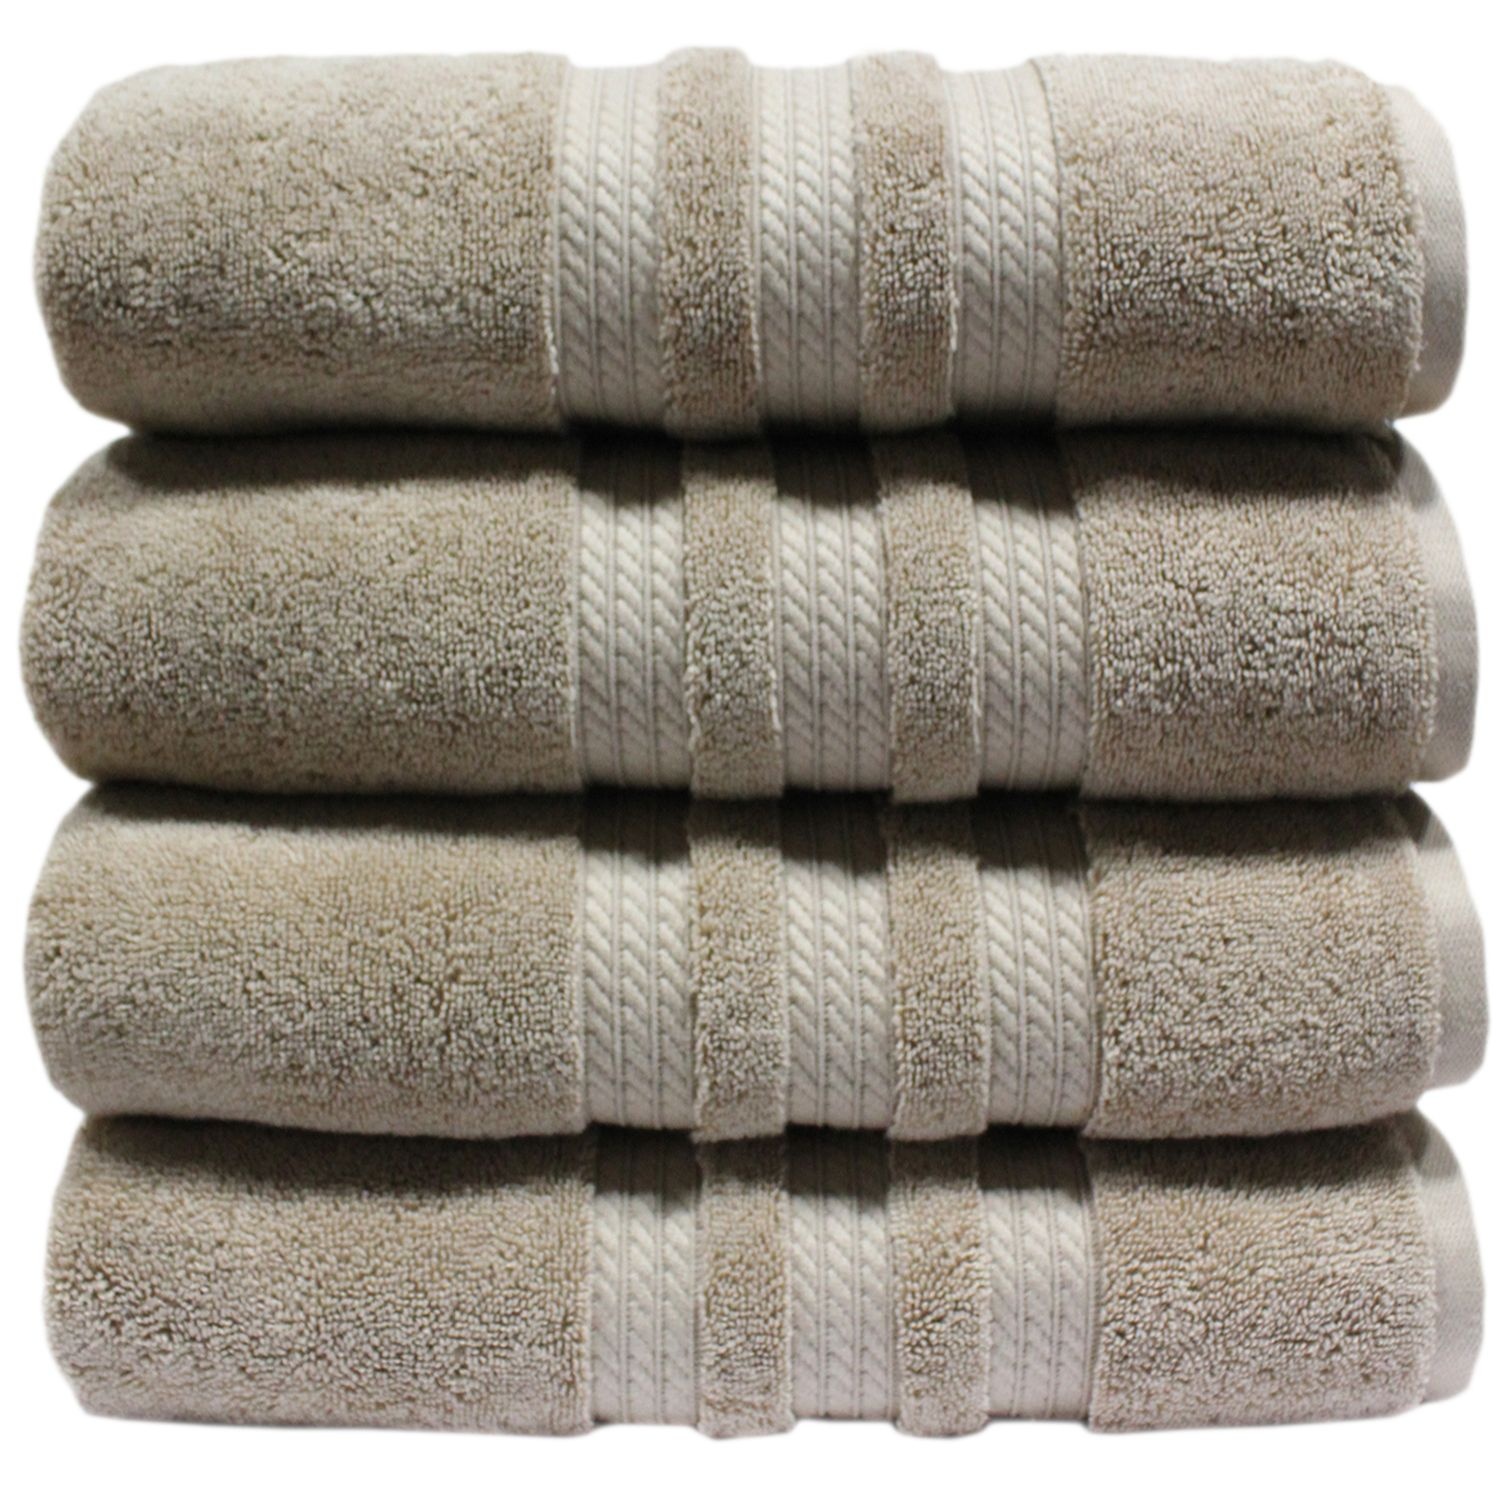 "100% Cotton Luxury Bath Towel - 30"" x 58"" - Linen"